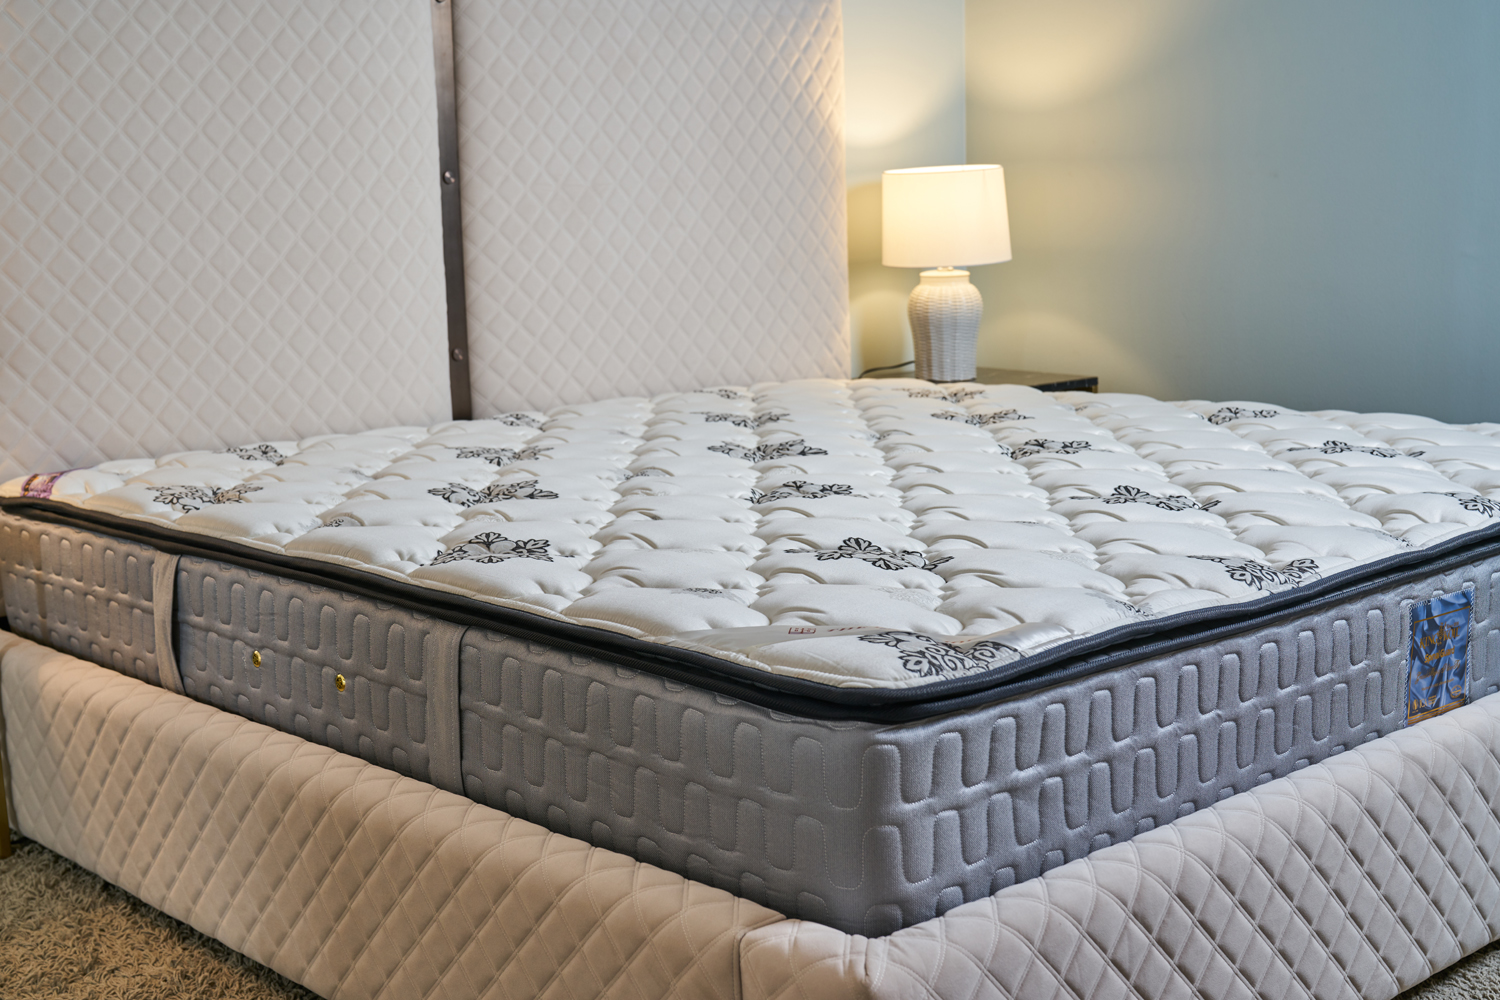 TheBedShop 15040361 KINGKOIL MATTRESS - NEW GRAND MAJESTY P.TOP